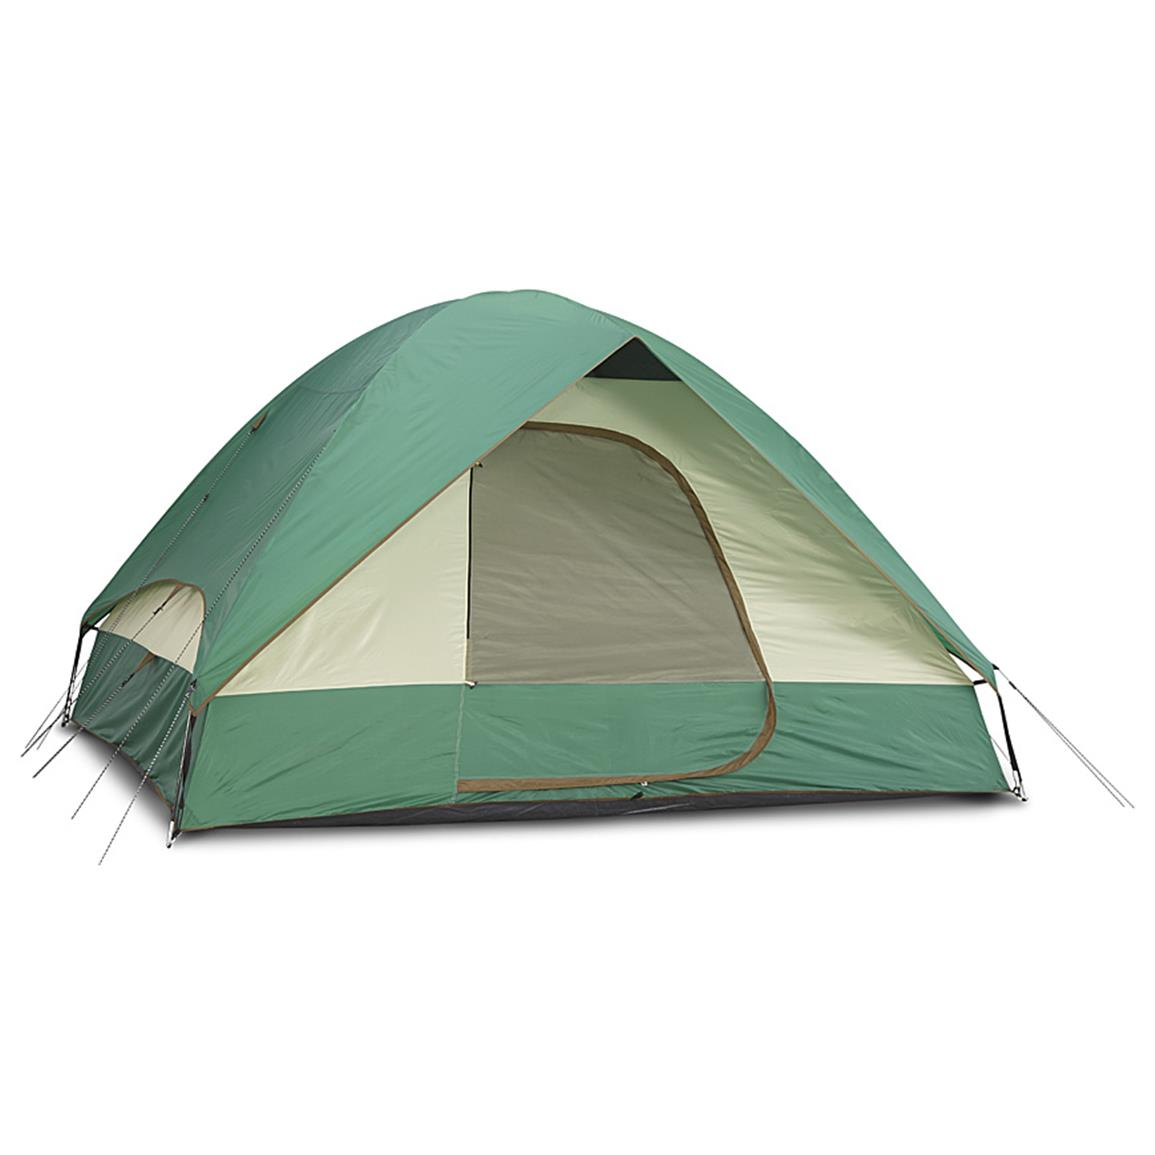 Guide Gear Compass 5 Person Dome Tent, 11' x 9', With Rainfy